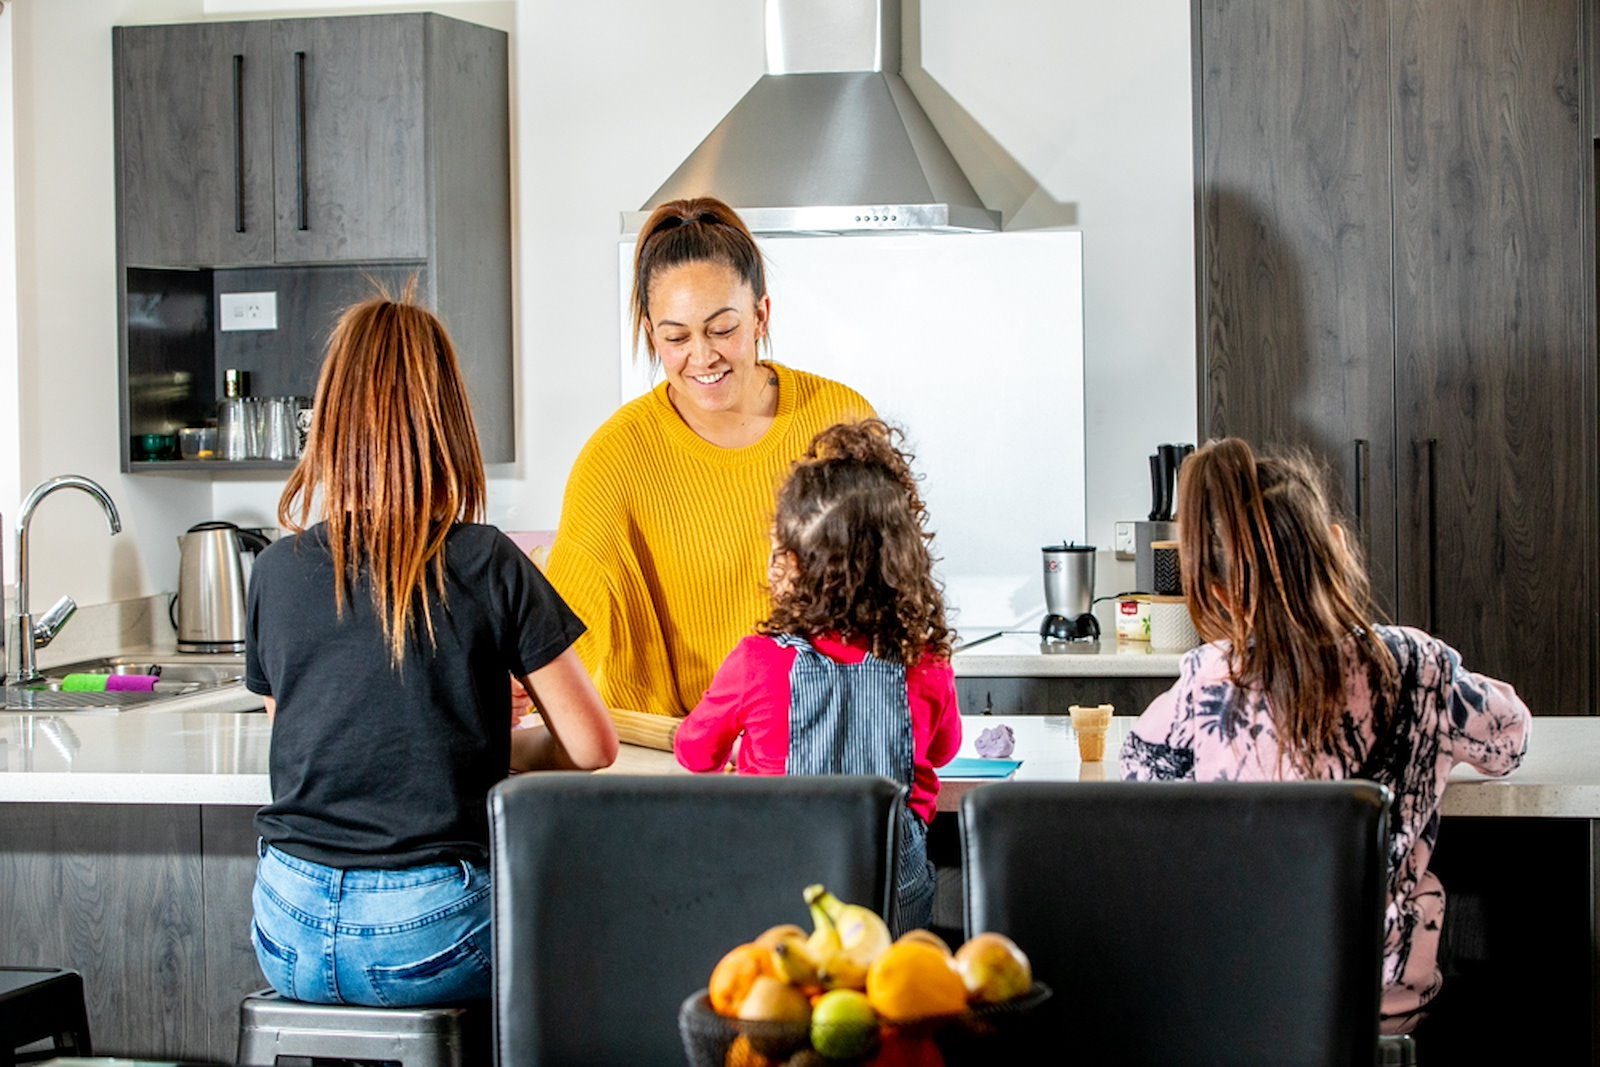 Terina Tawhai with her daughters Marcia-Kruz Tamati (left), Aroha Tamati (middle) and Elaine-Kelly Tamati inside their new whare in Hastings. Photo credit: Josie McClutchie.